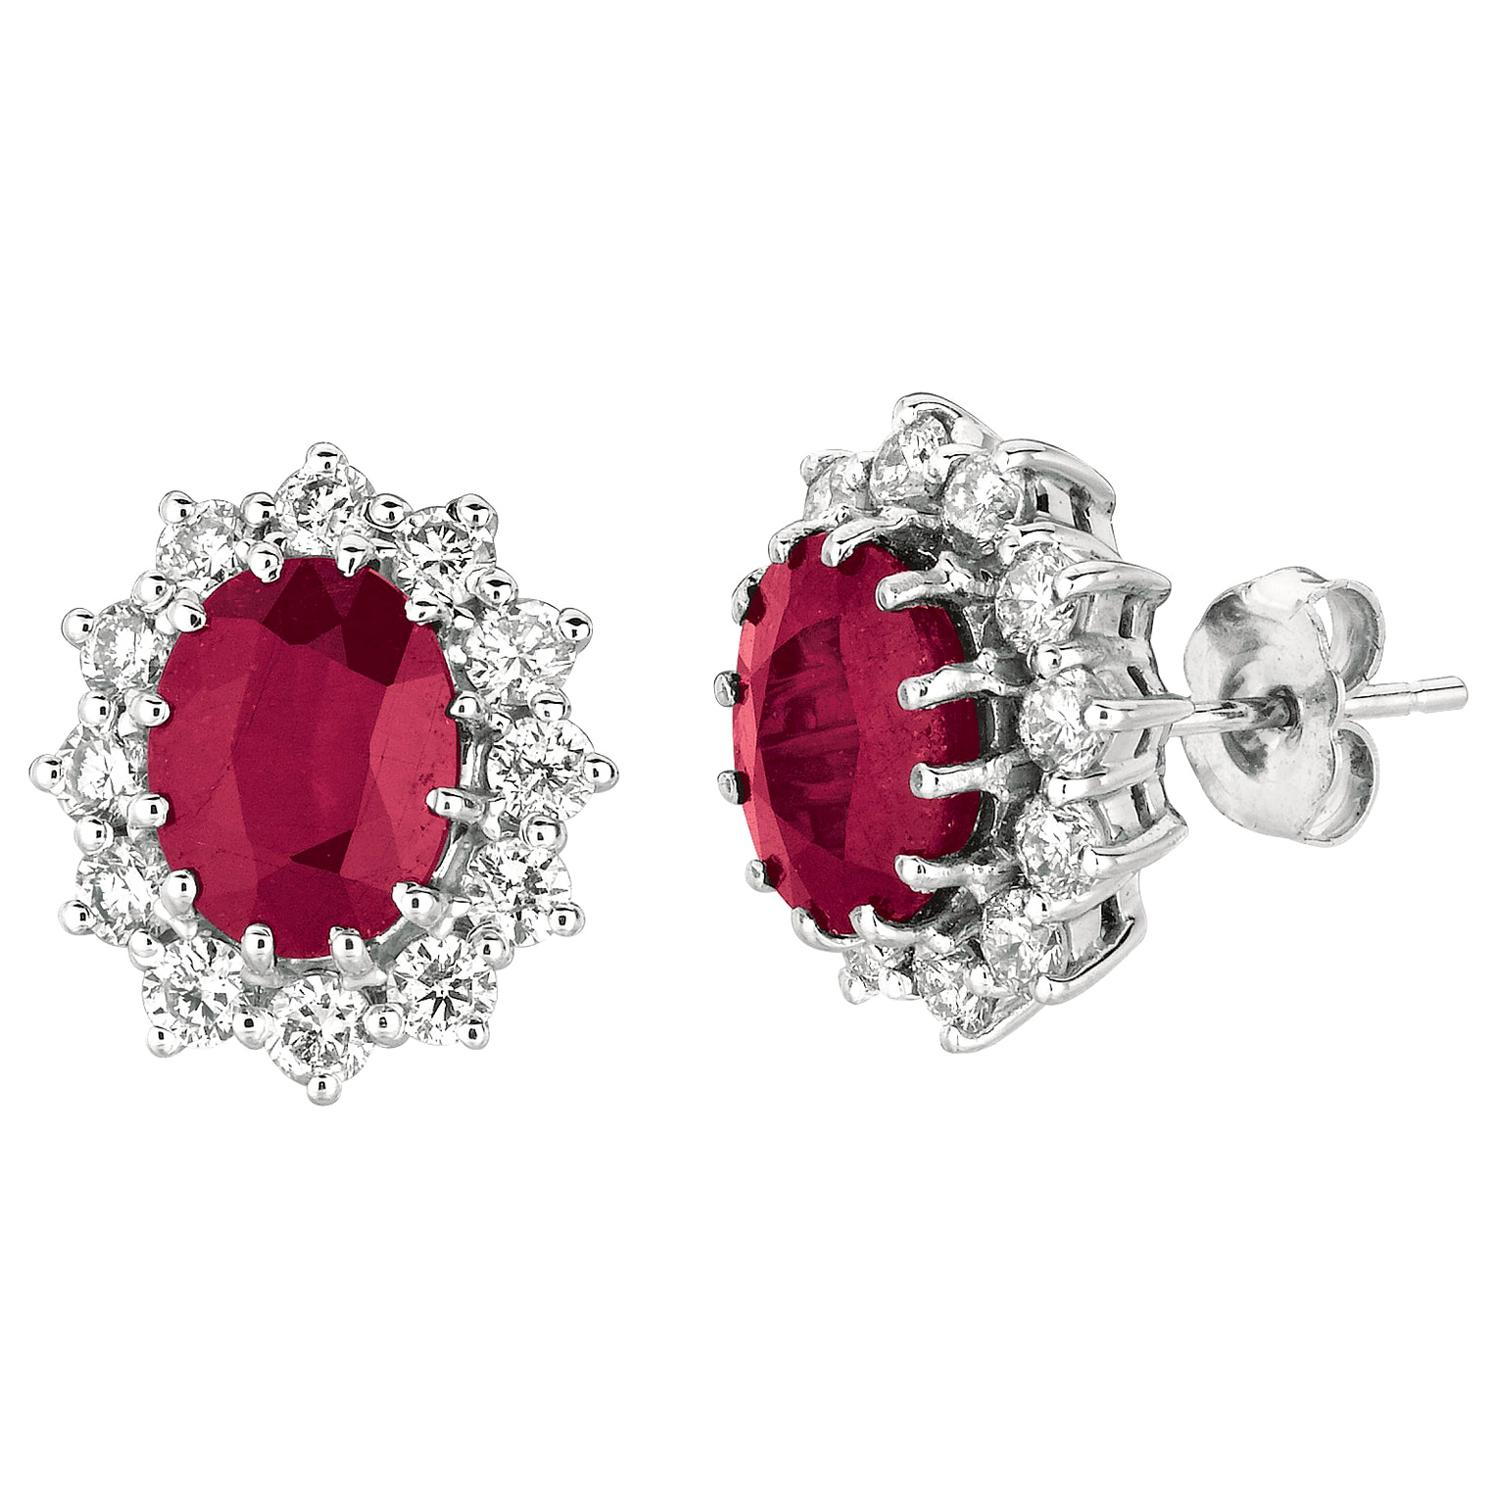 7.00 Carat Natural Ruby and Diamond Oval Earrings 14 Karat White Gold